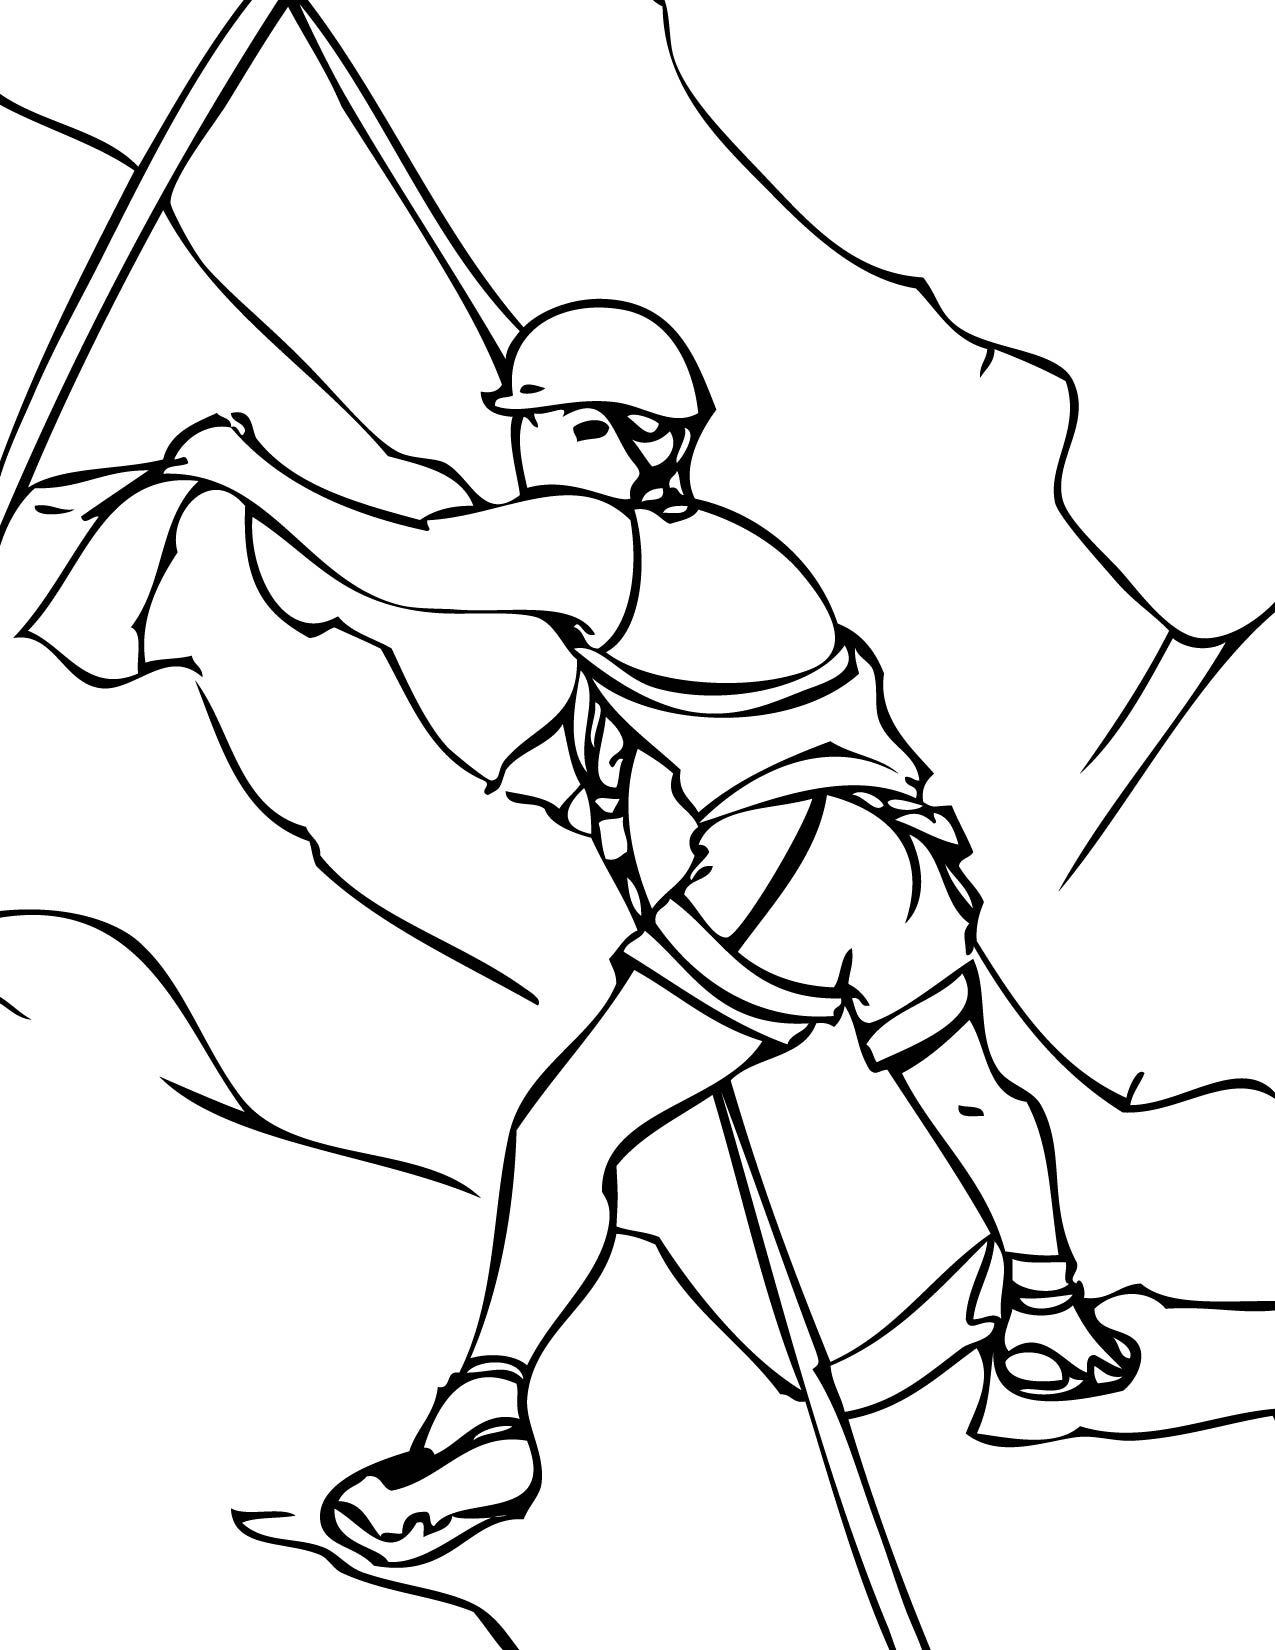 mountain climber coloring pages - photo#43